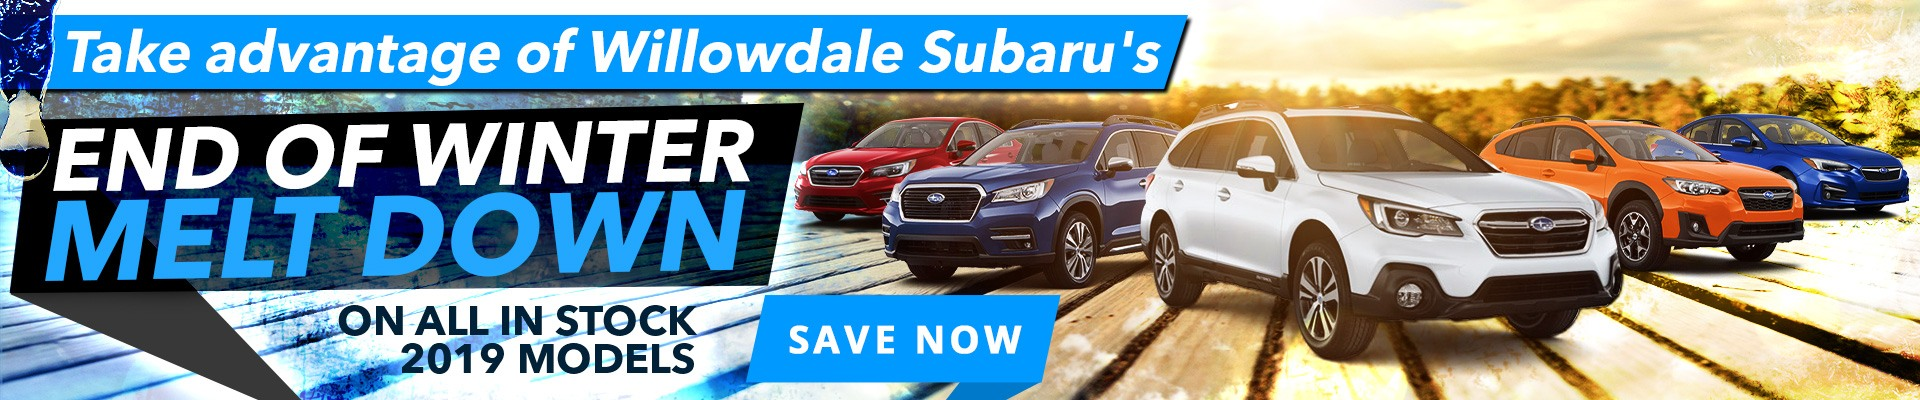 Our Price Meltdown is On For All 2019 Subaru Models at Our Big Toronto Subaru Sale!